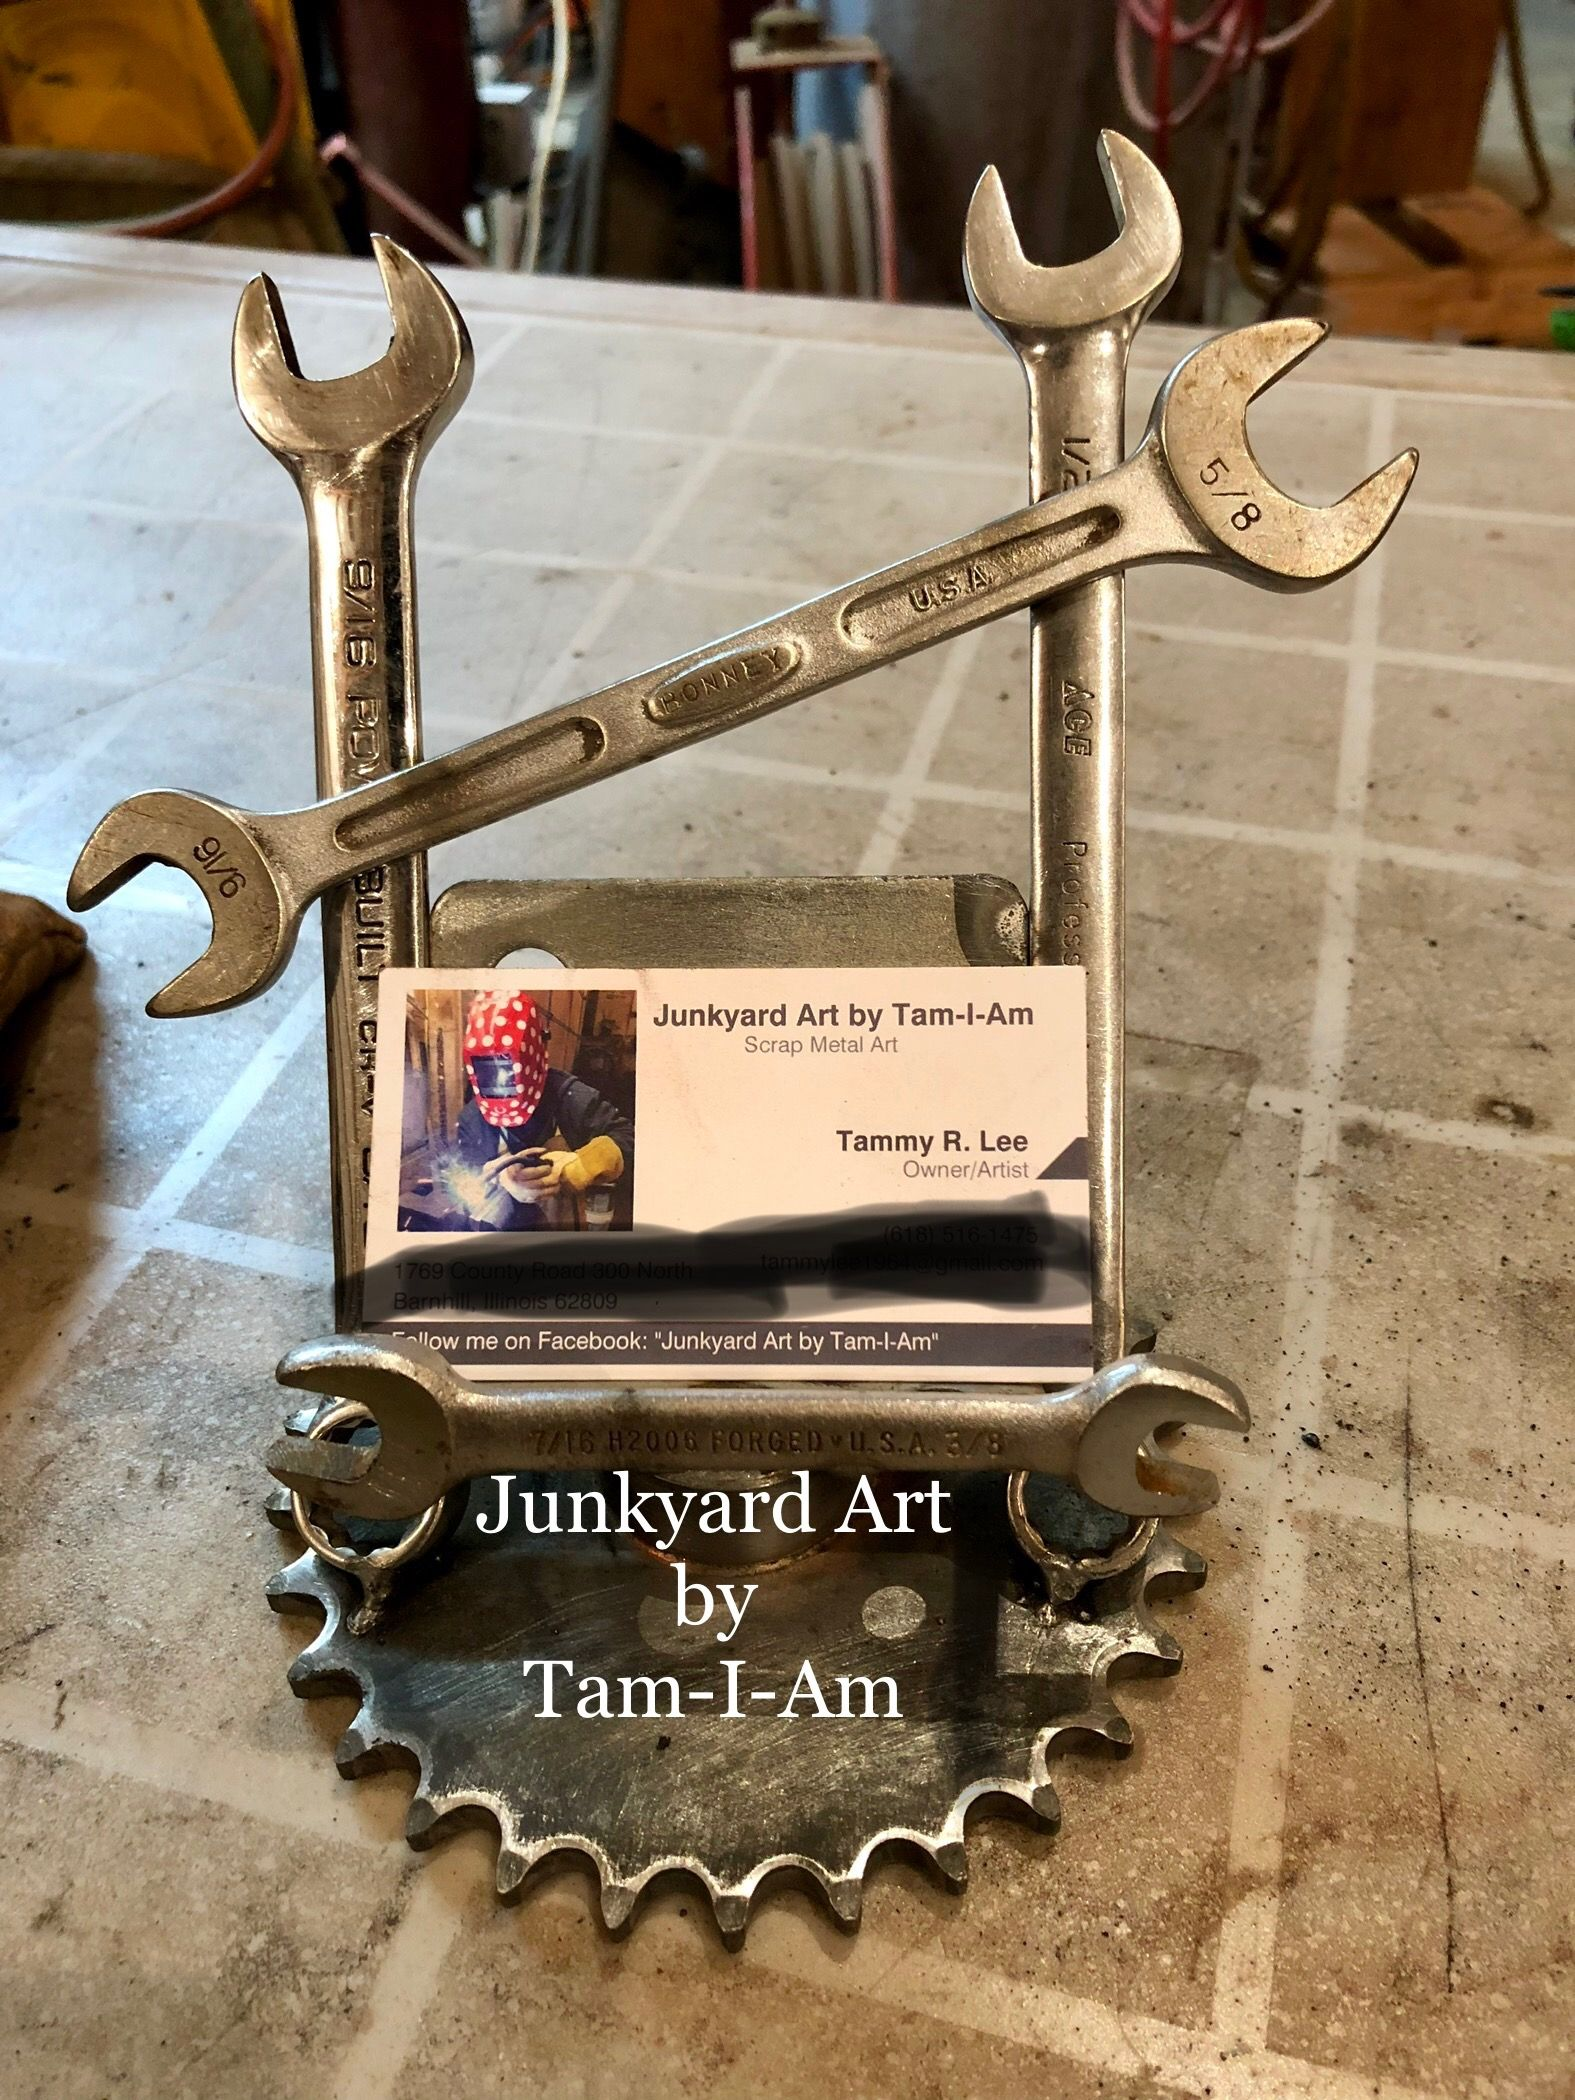 Junkyard Art by Tam-I-Am. Repurposed wrenches and a sprocket welded ...